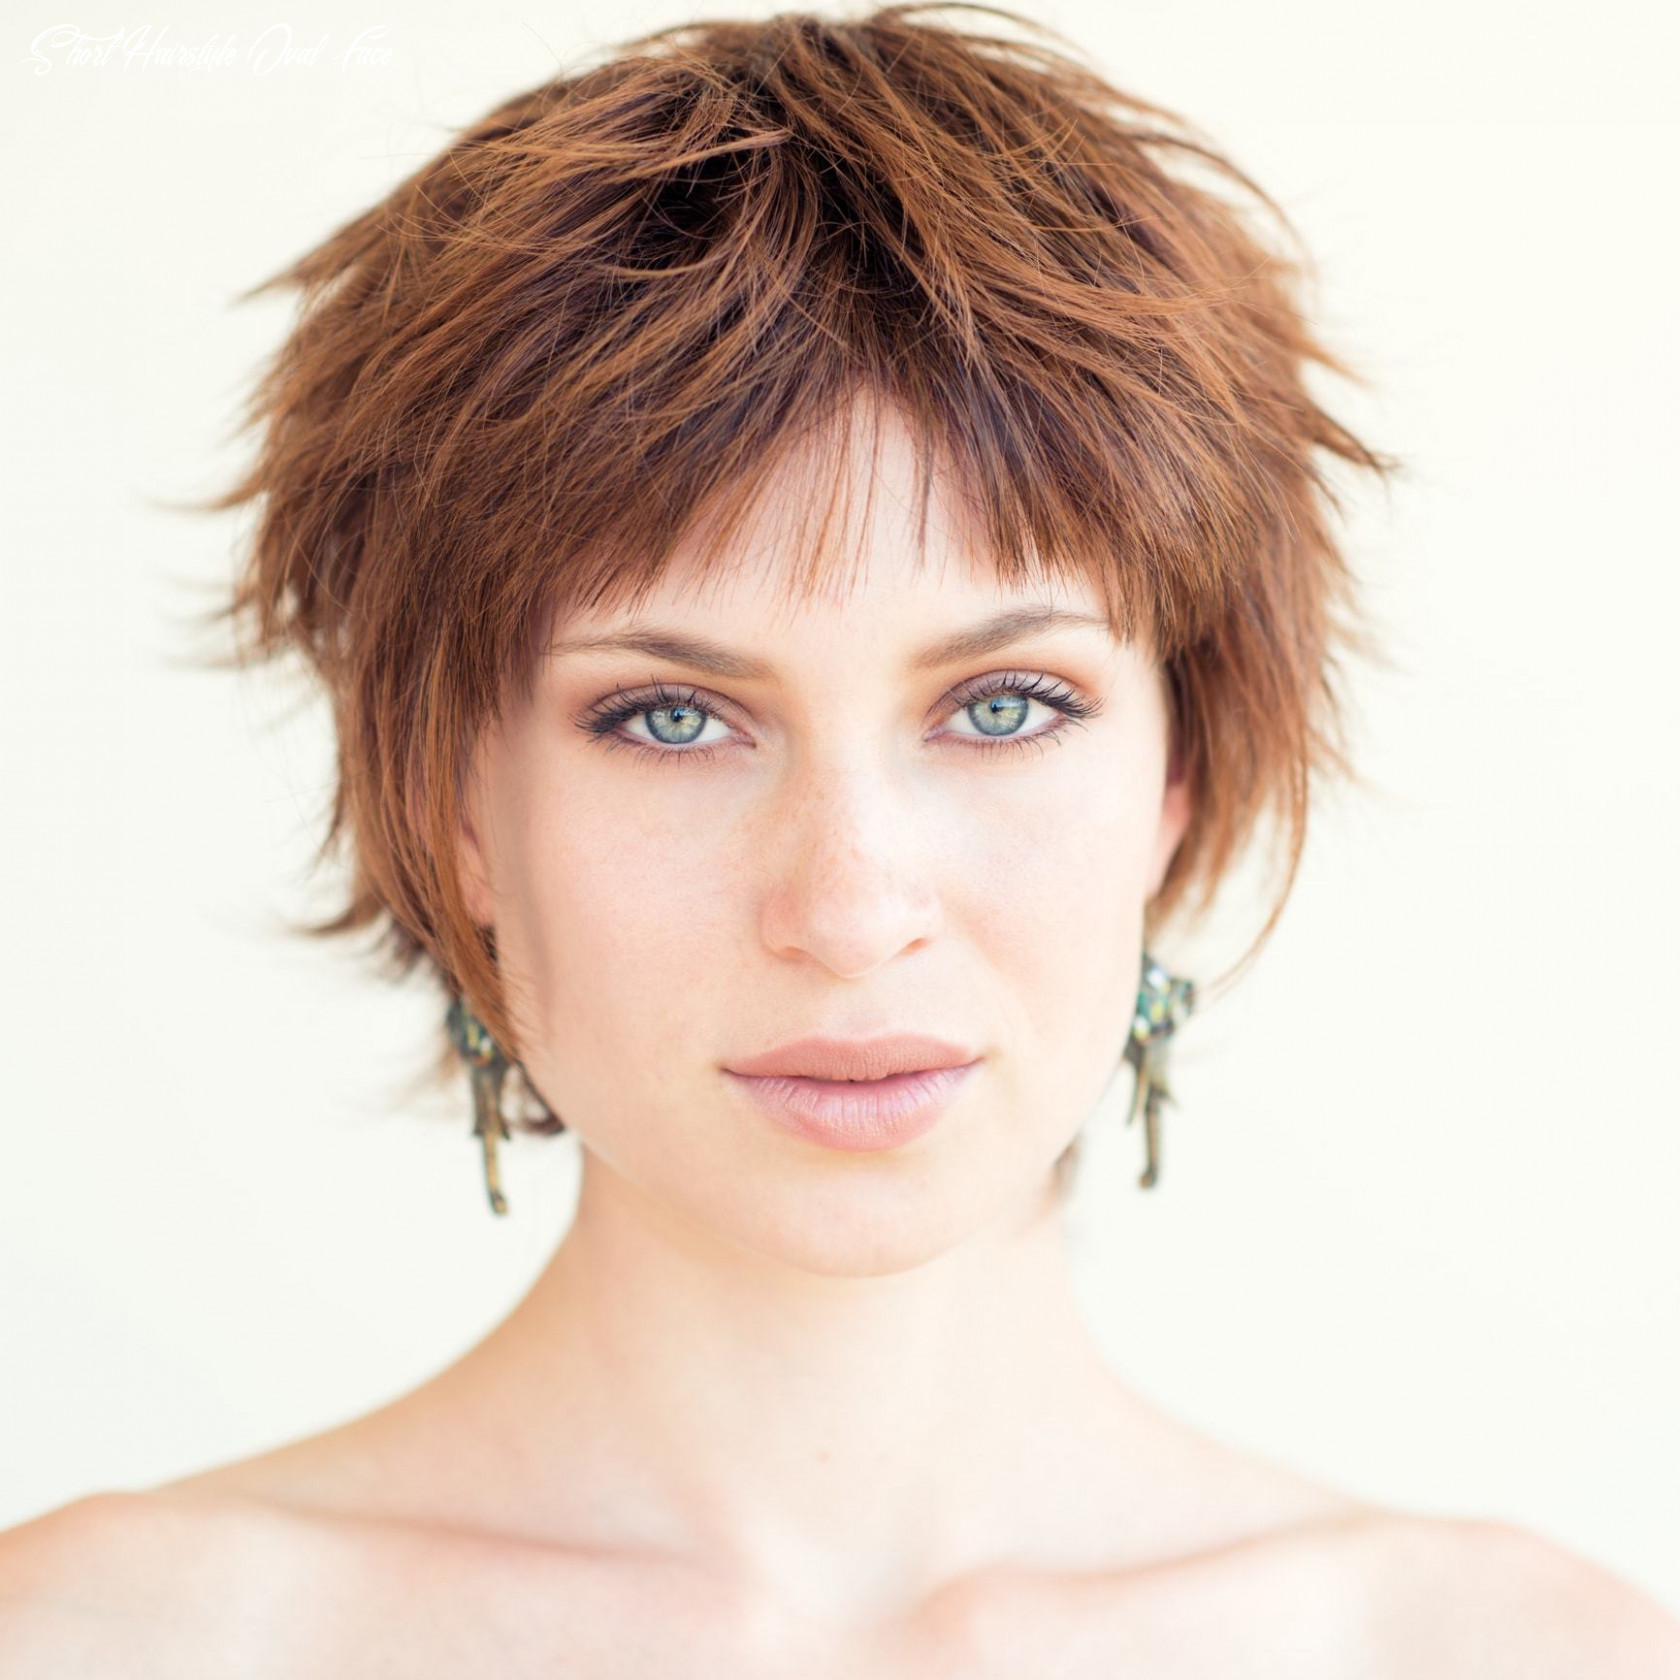 Short haircuts for oval faces for women   all things hair us short hairstyle oval face